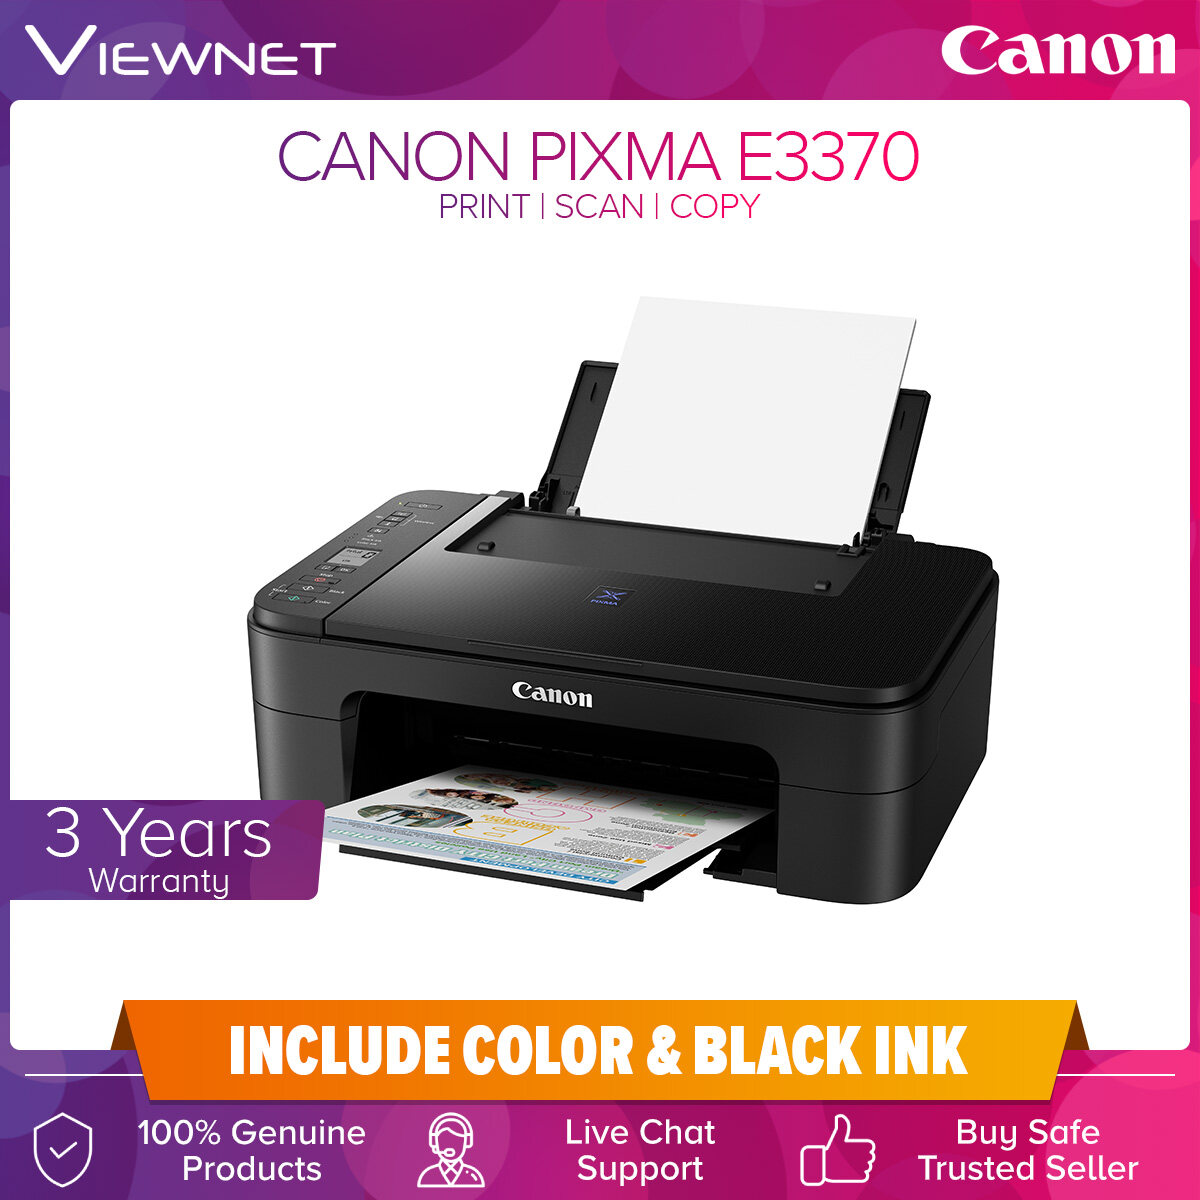 Canon PIXMA E3370 Compact Wireless All-In-One with LCD for Low-Cost Printing Print Scan Copy Wireless Print